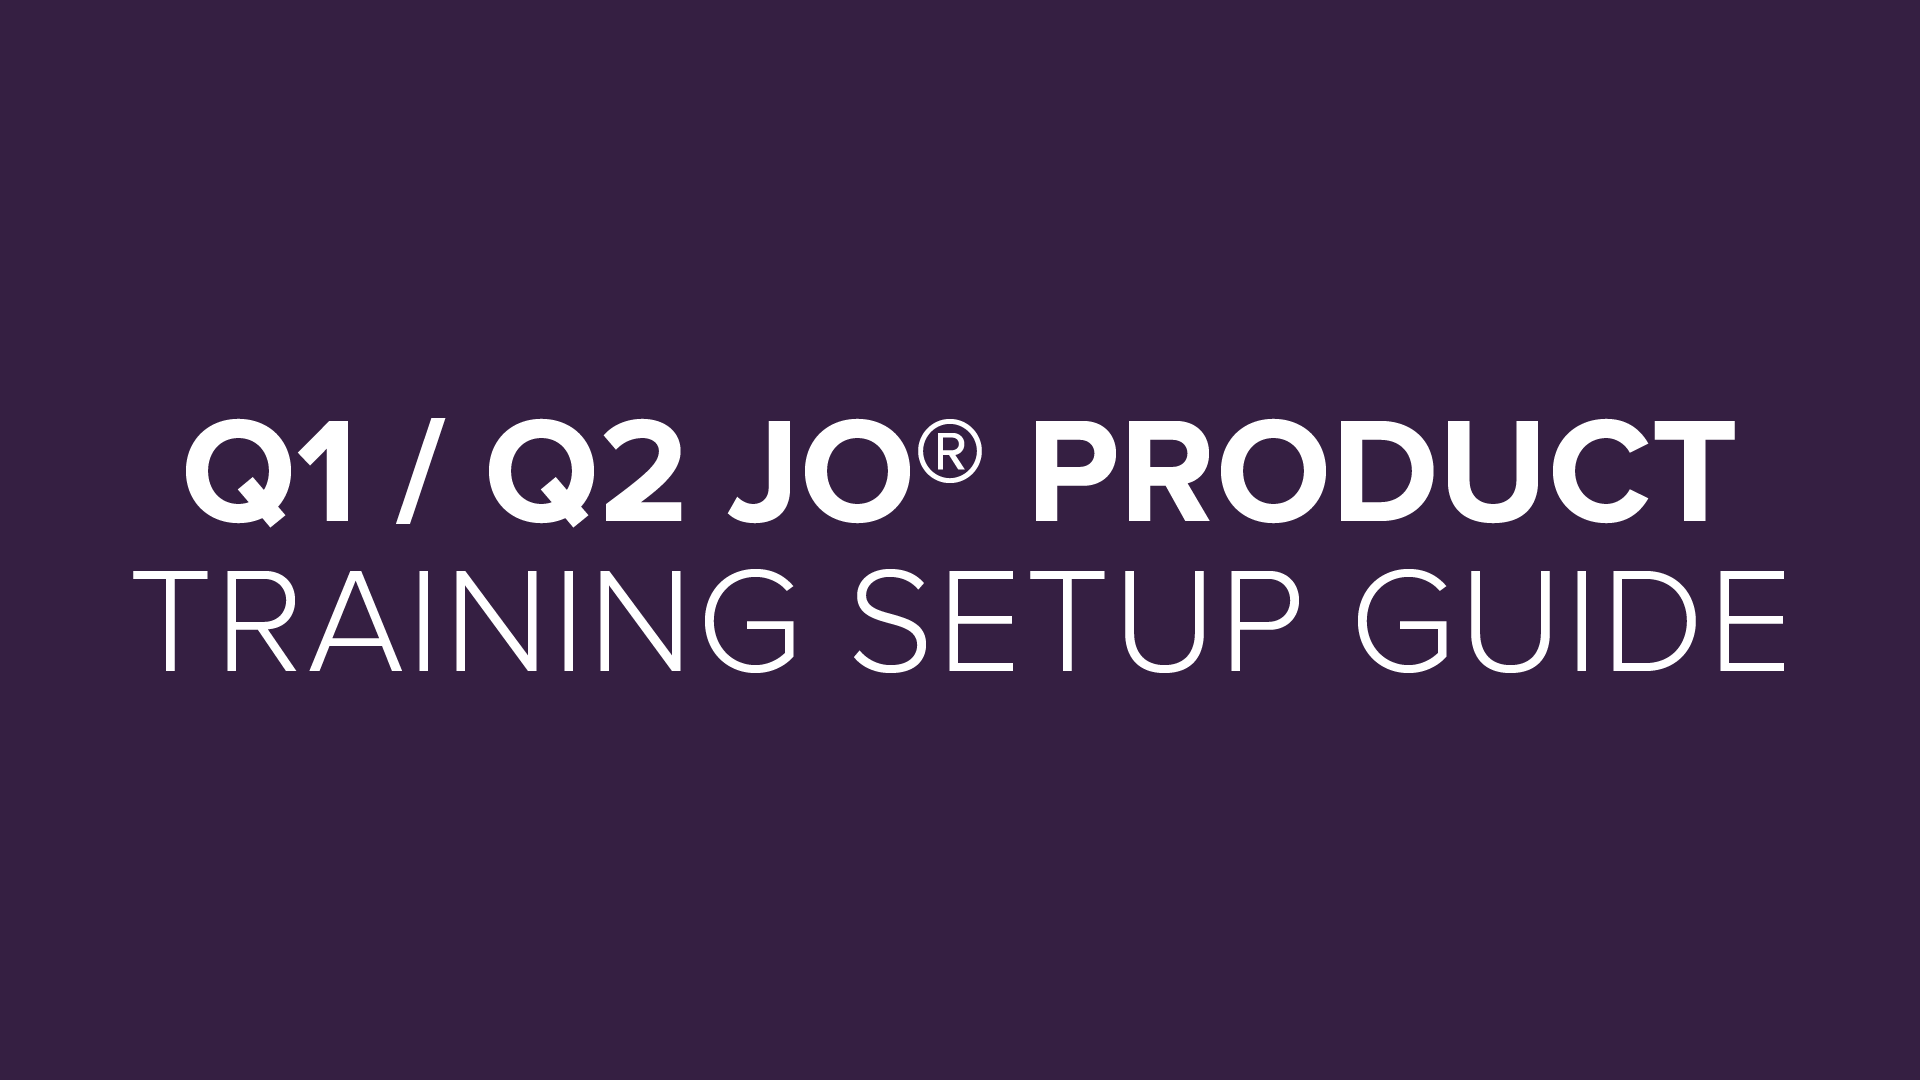 JO Category Icons (with color)_Q1 Q2 JO Product Training Setup Guide.png